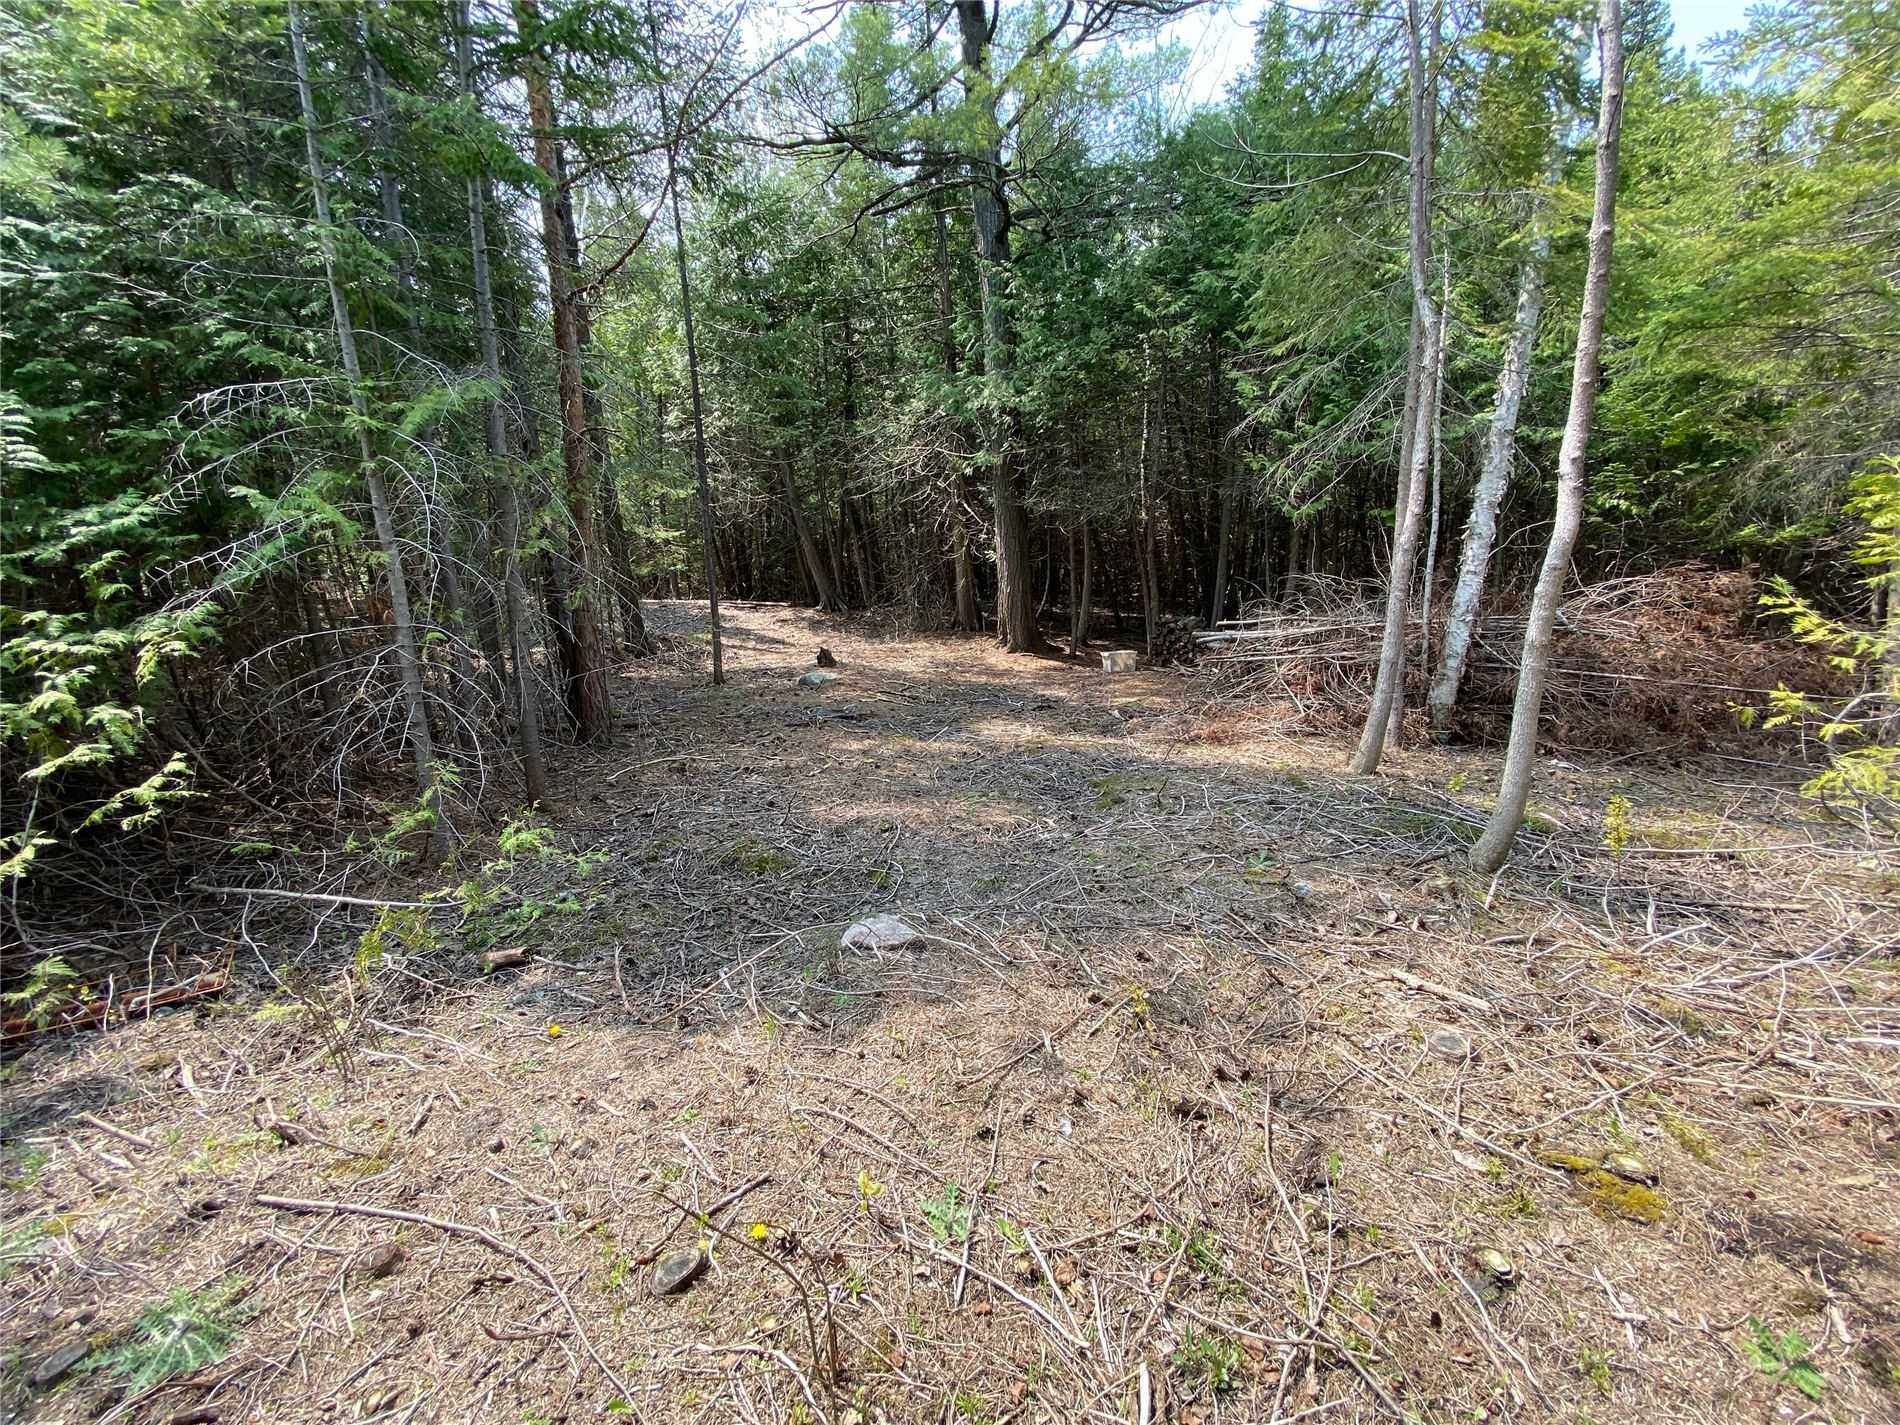 Vacant Land For Sale In Wasaga Beach , ,Vacant Land,For Sale,Bay Sands